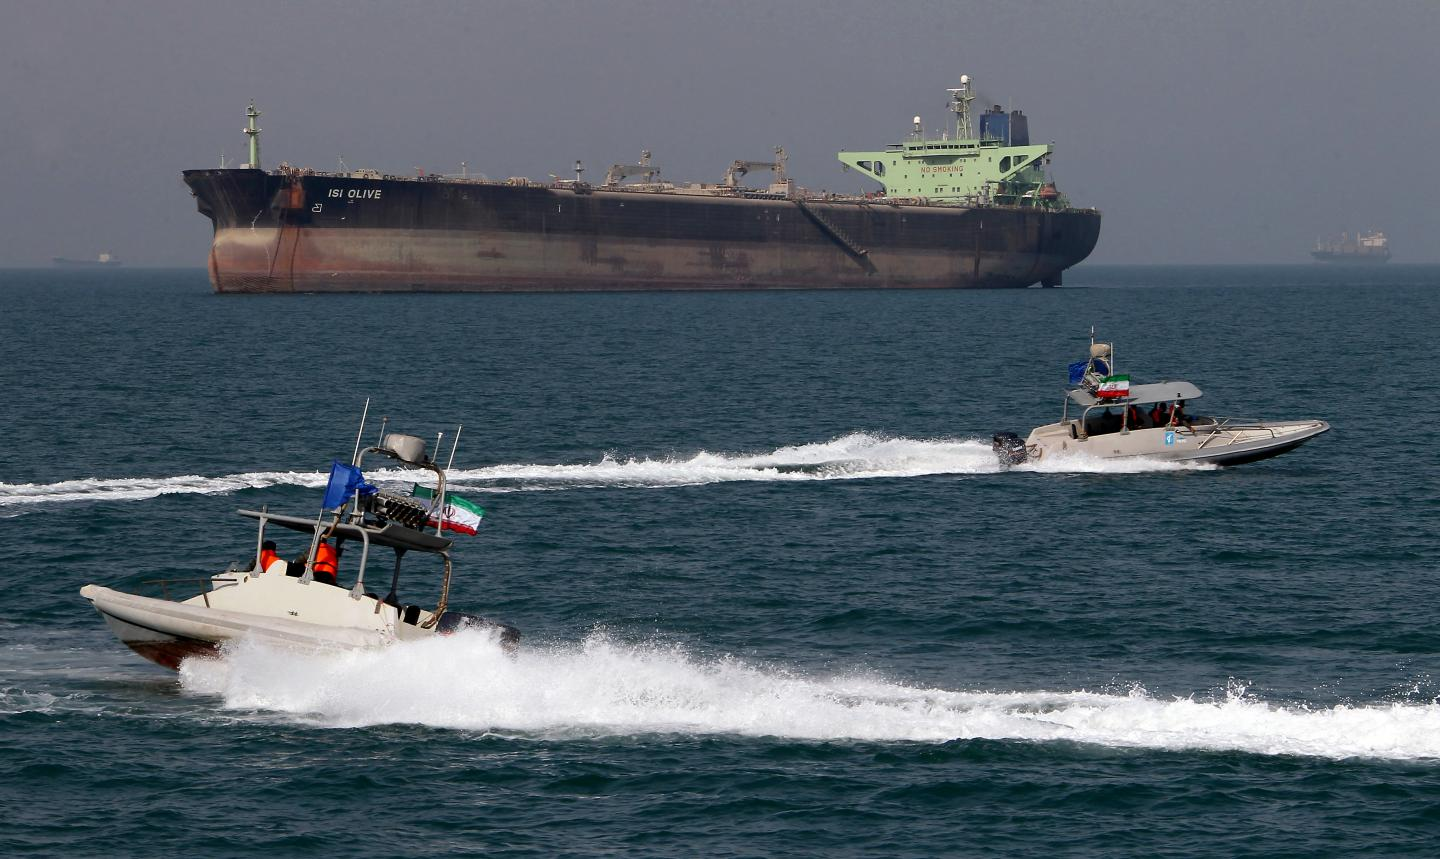 Web of Lebanese companies may be shipping Iranian oil to Syria